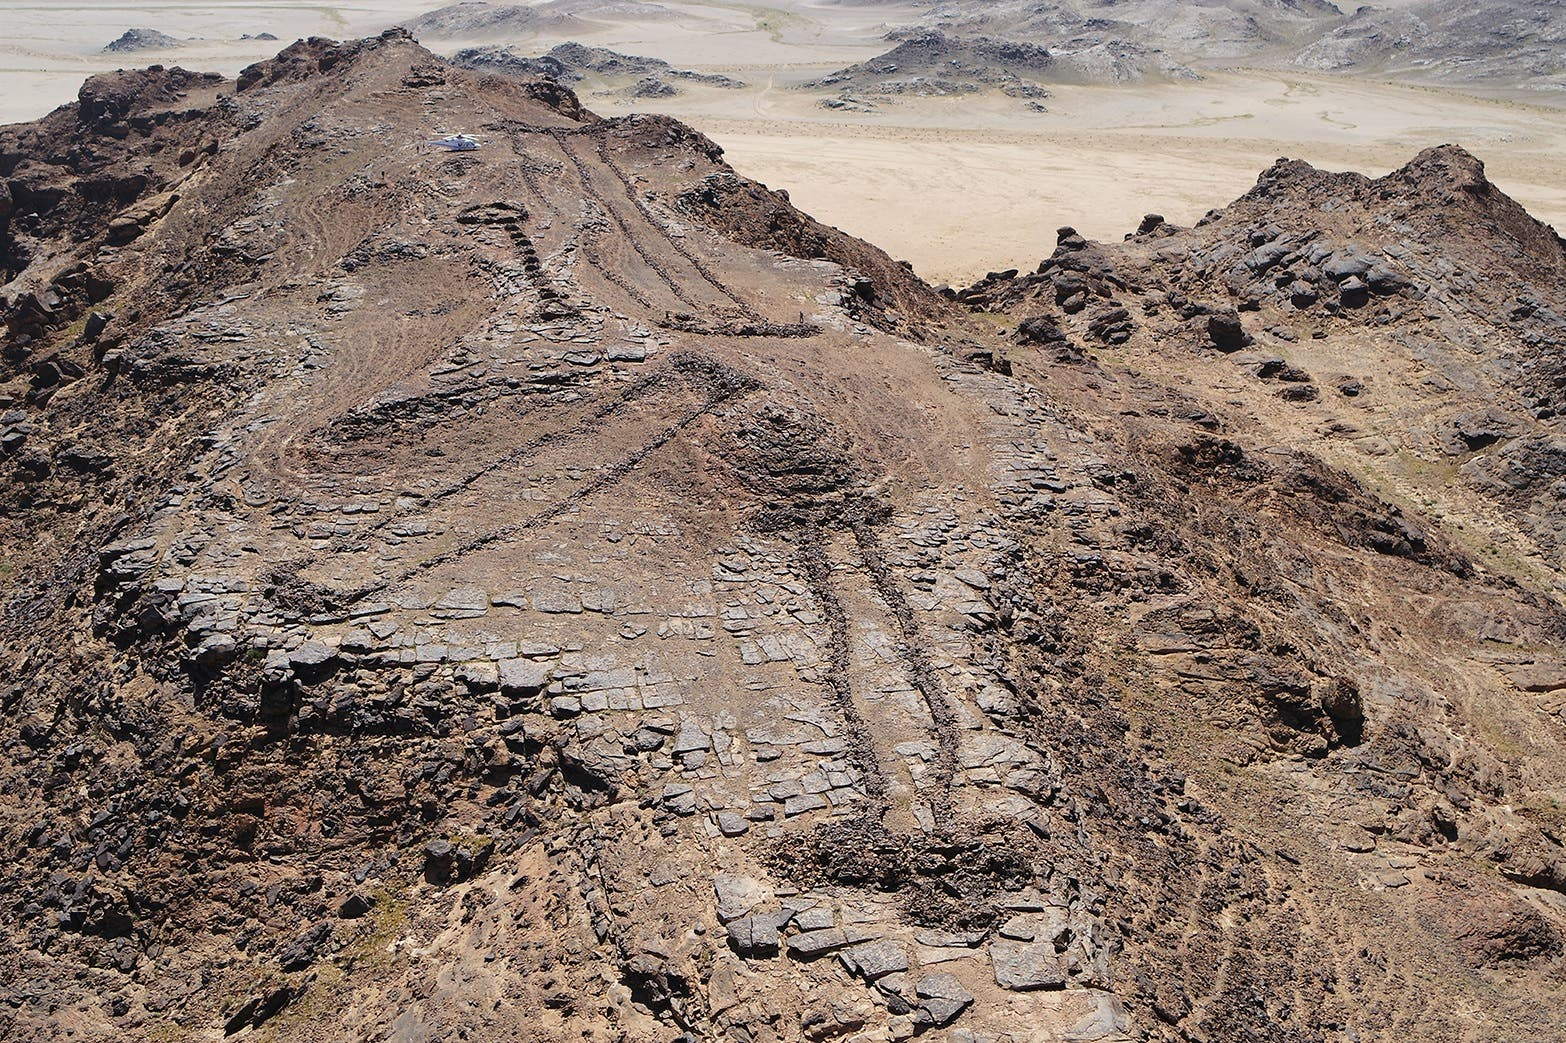 Three monumental mustatils and a later funerary 'pendant' located atop a rocky outcrop on the border of Khaybar and AlUla counties. (Image: Royal Commission for AlUla)